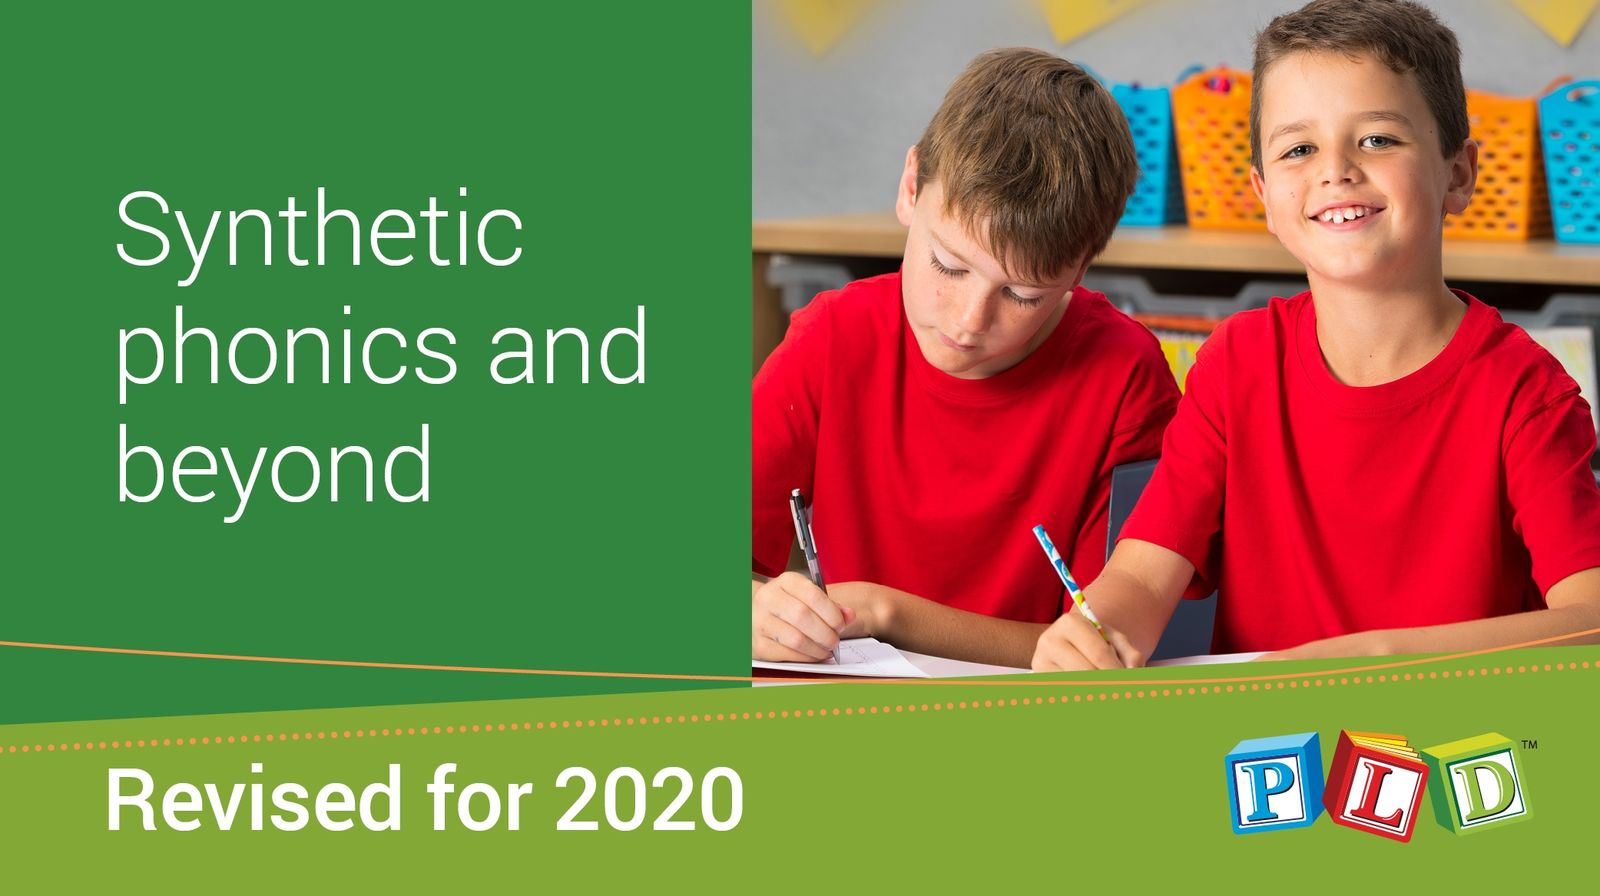 Synthetic phonics and beyond